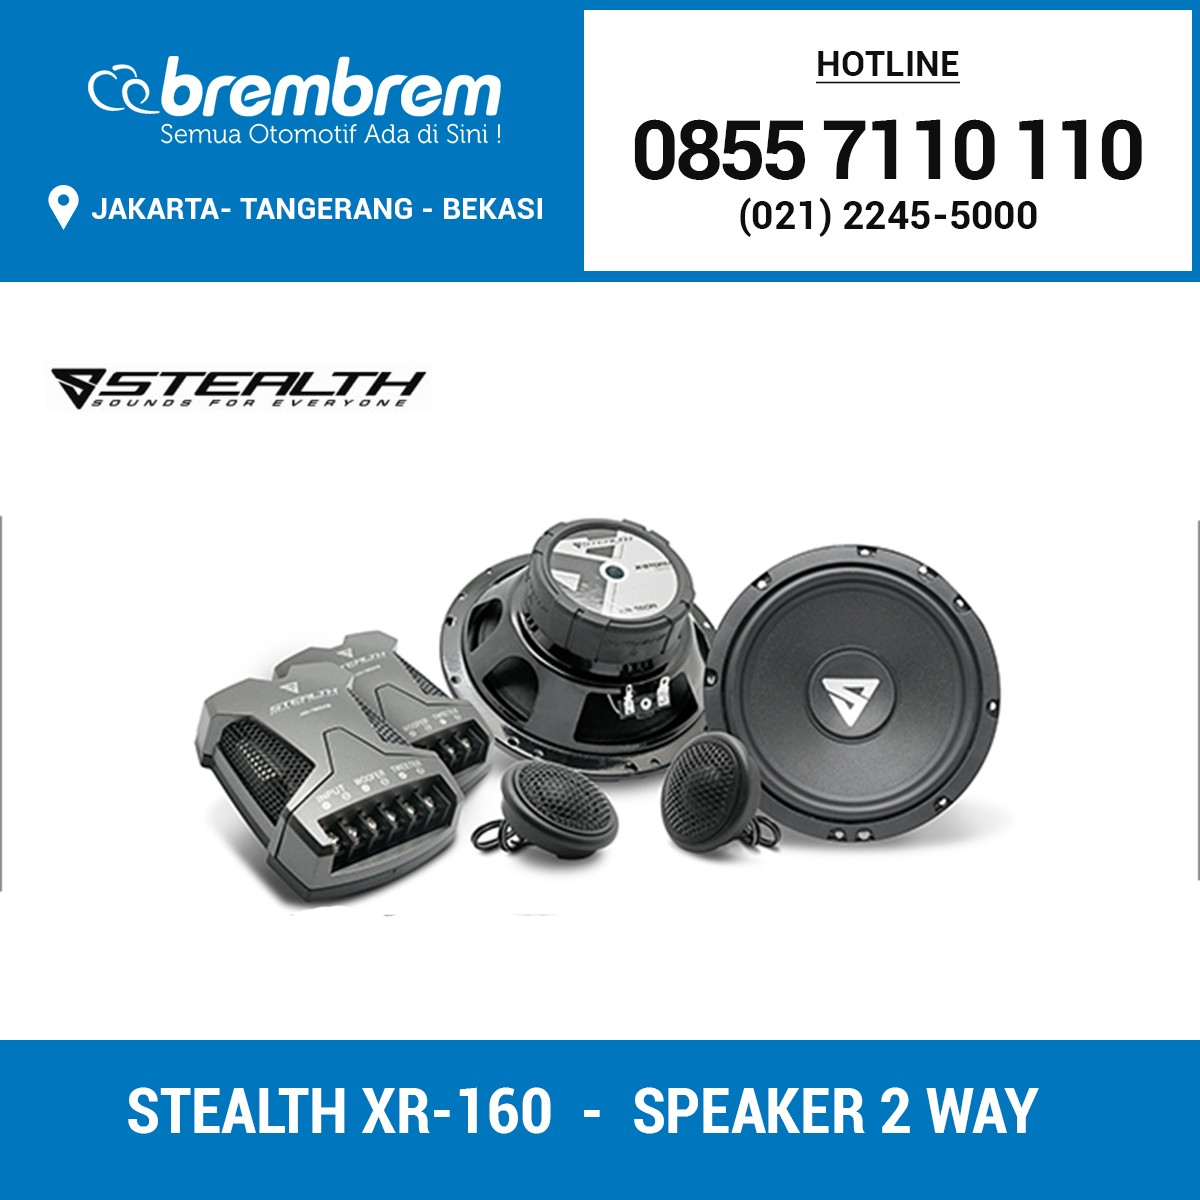 STEALTH XR-160 - SPEAKER 2 WAY